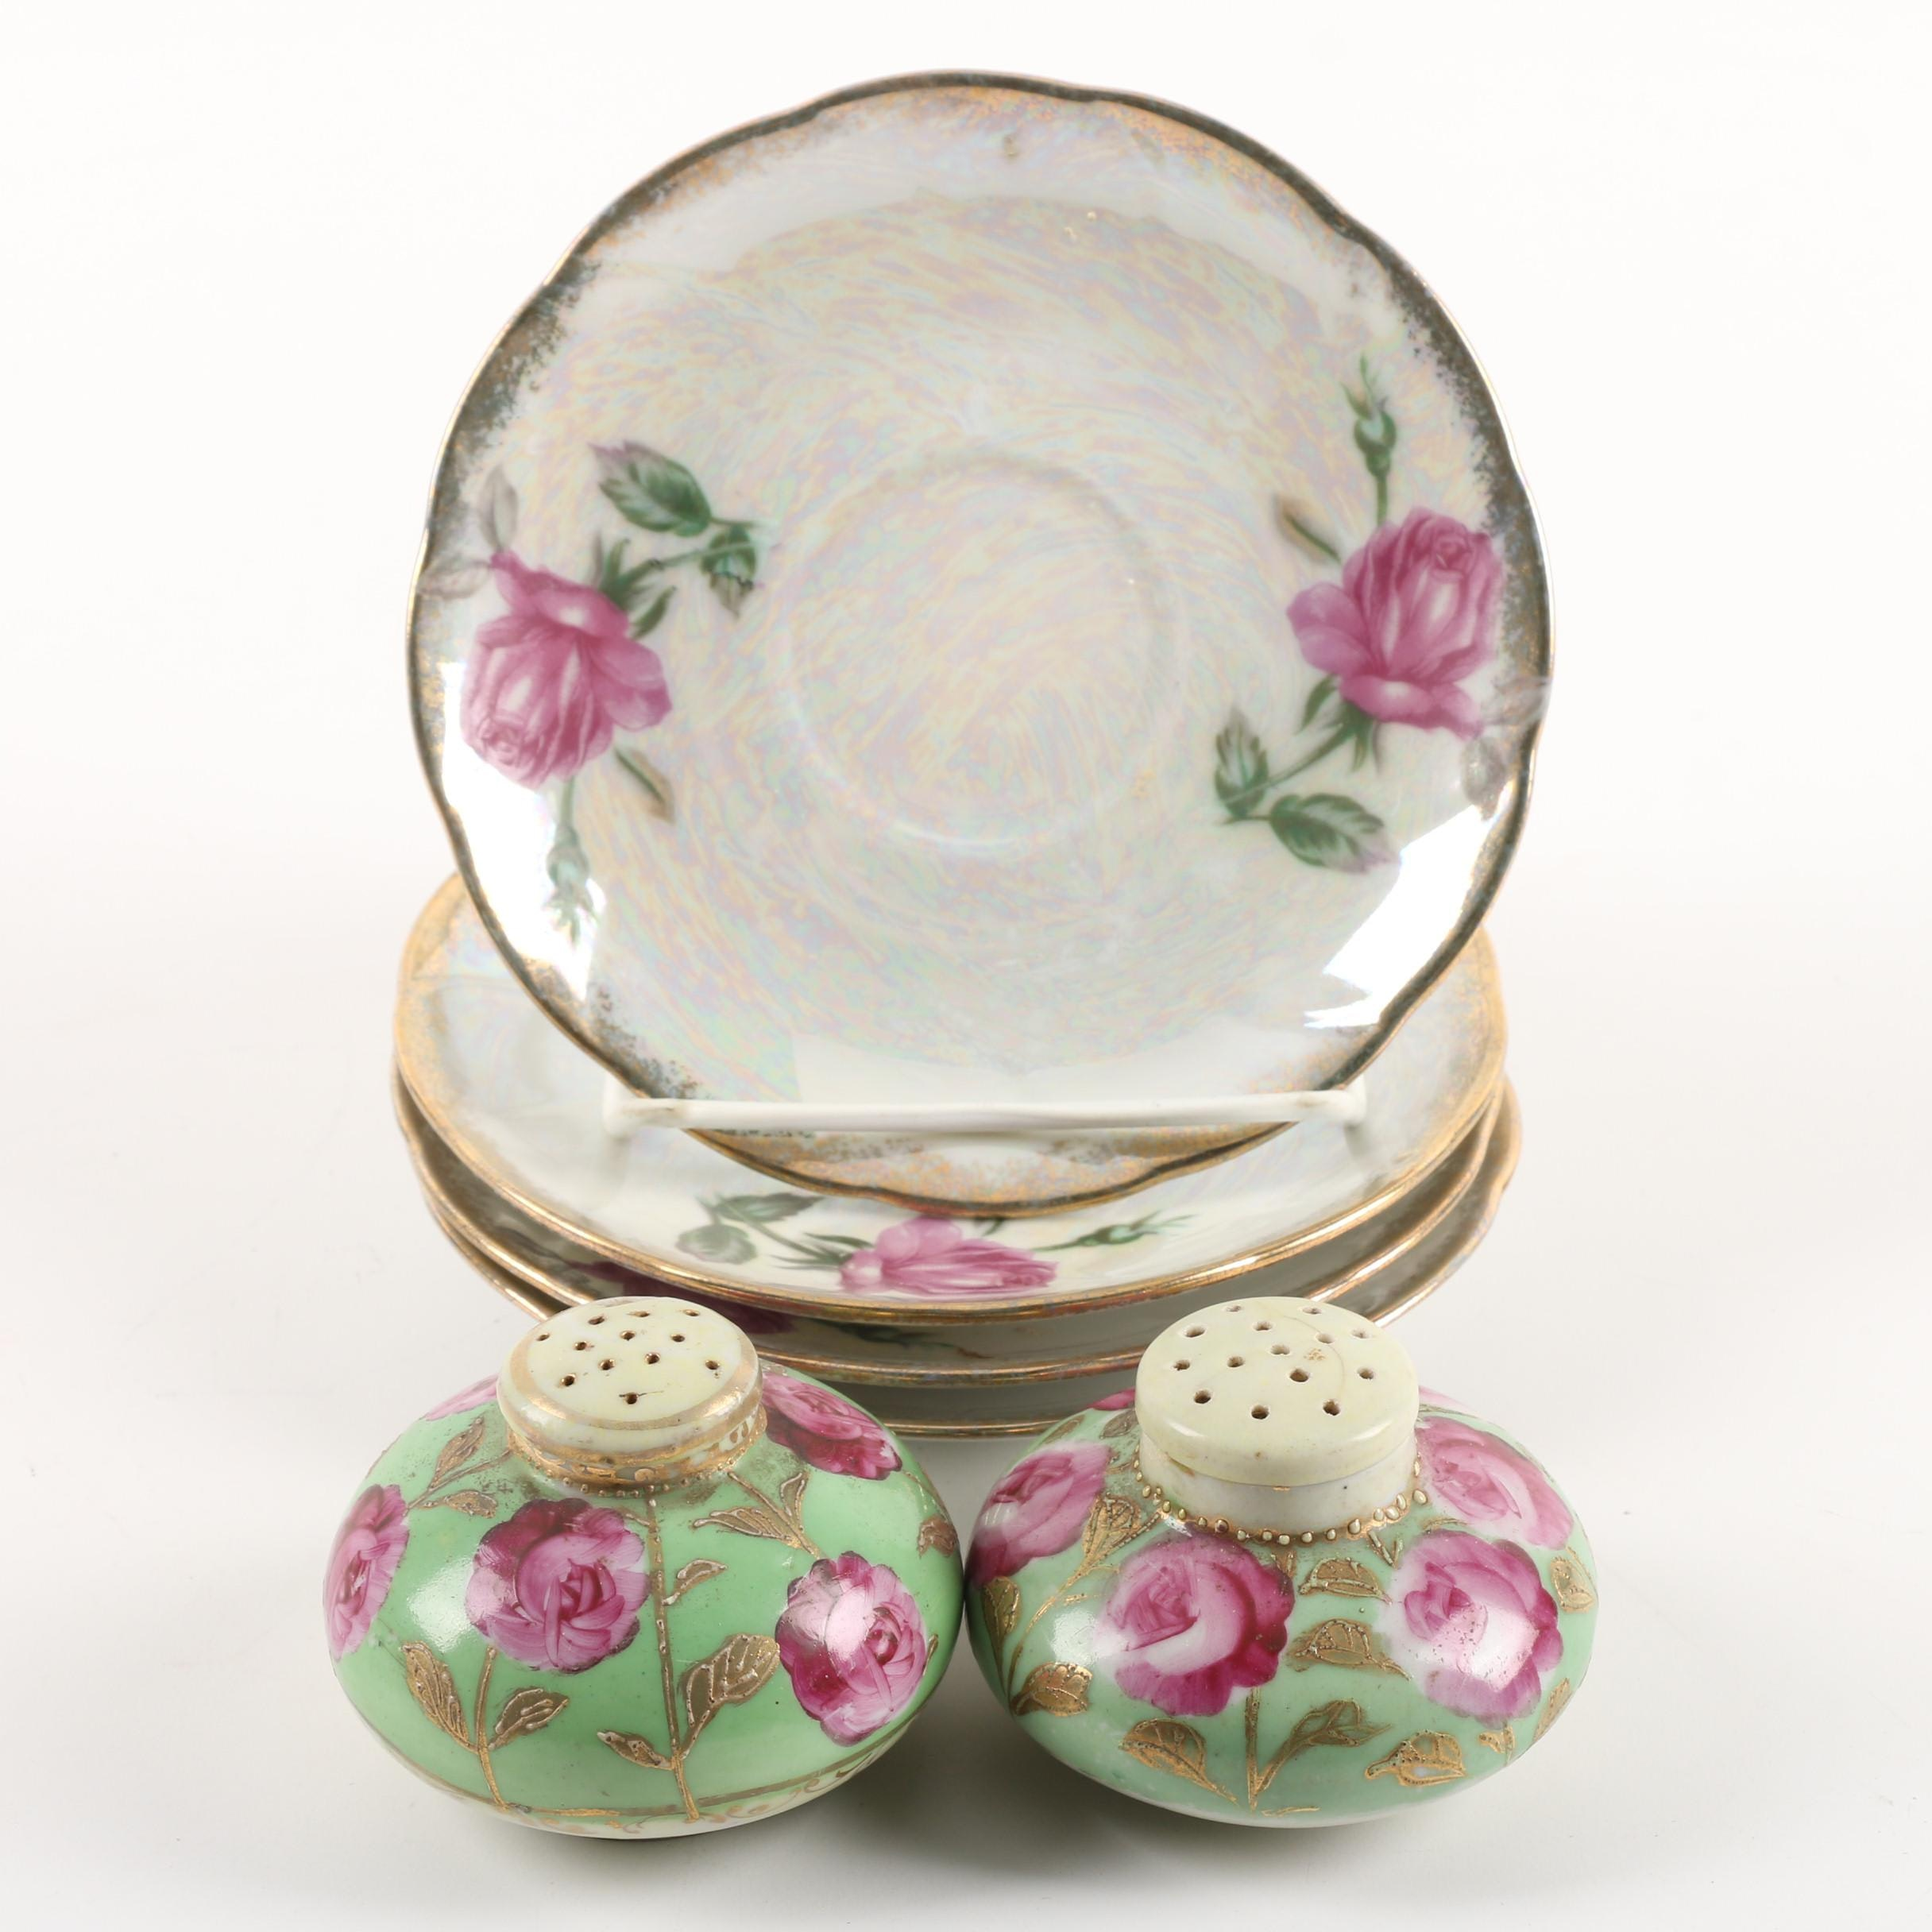 Vintage Hand-Painted Salt and Pepper Shakers with Iridescent Saucers